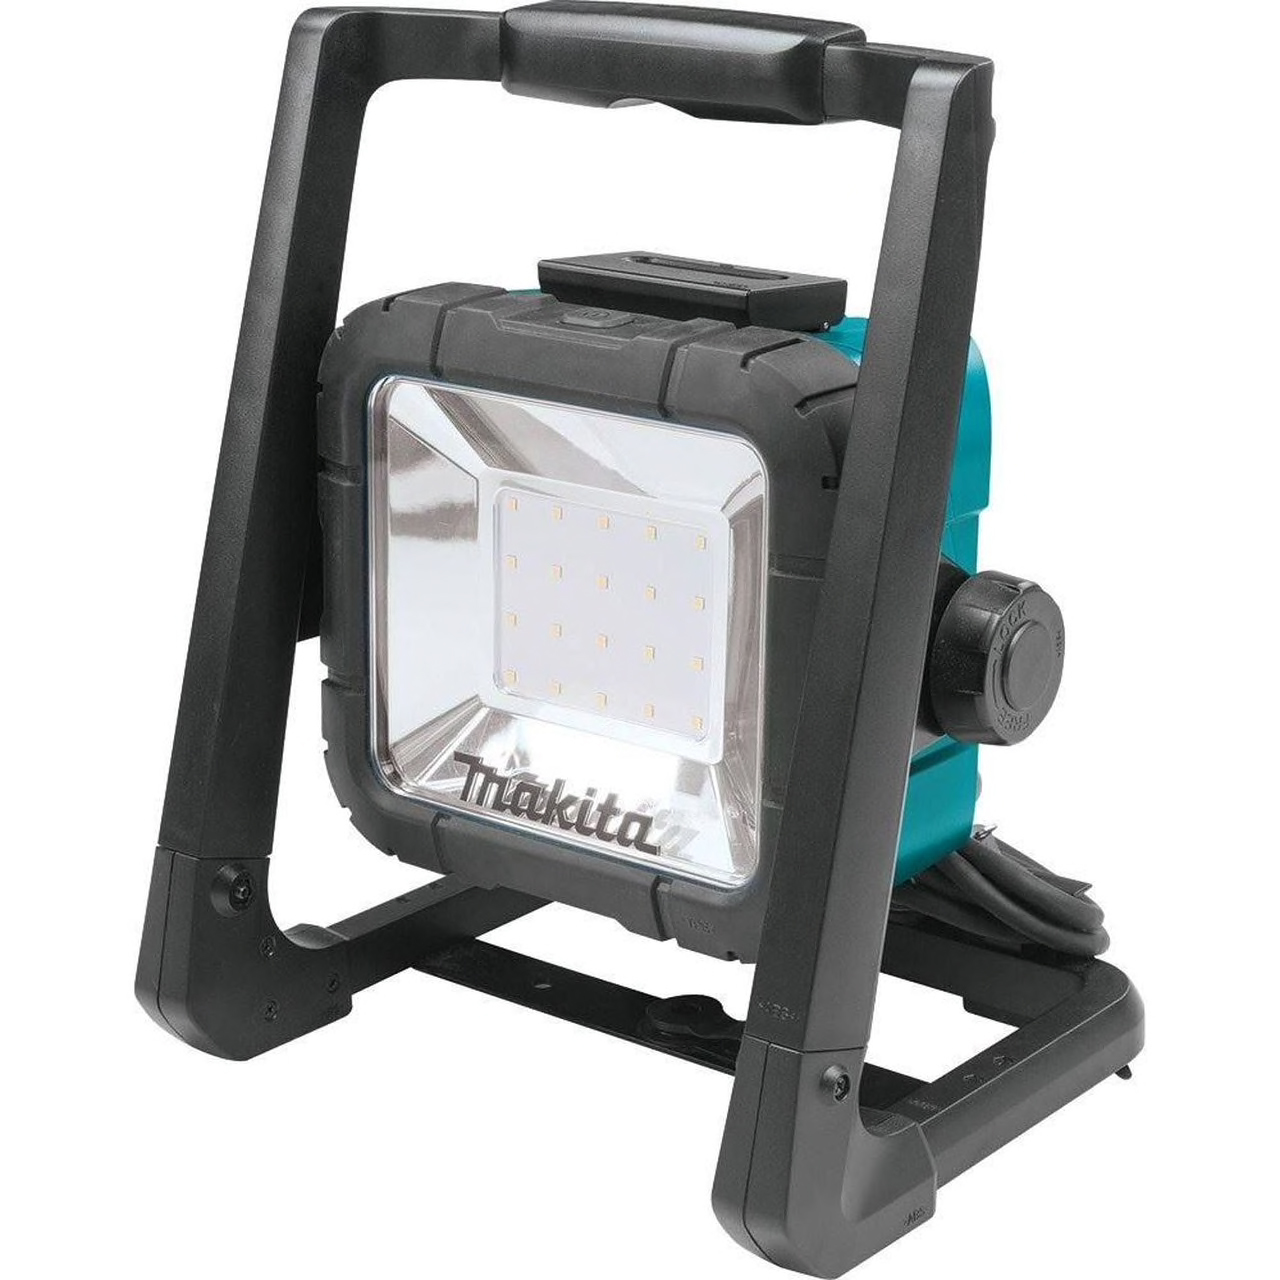 Makita Lighting & Torches